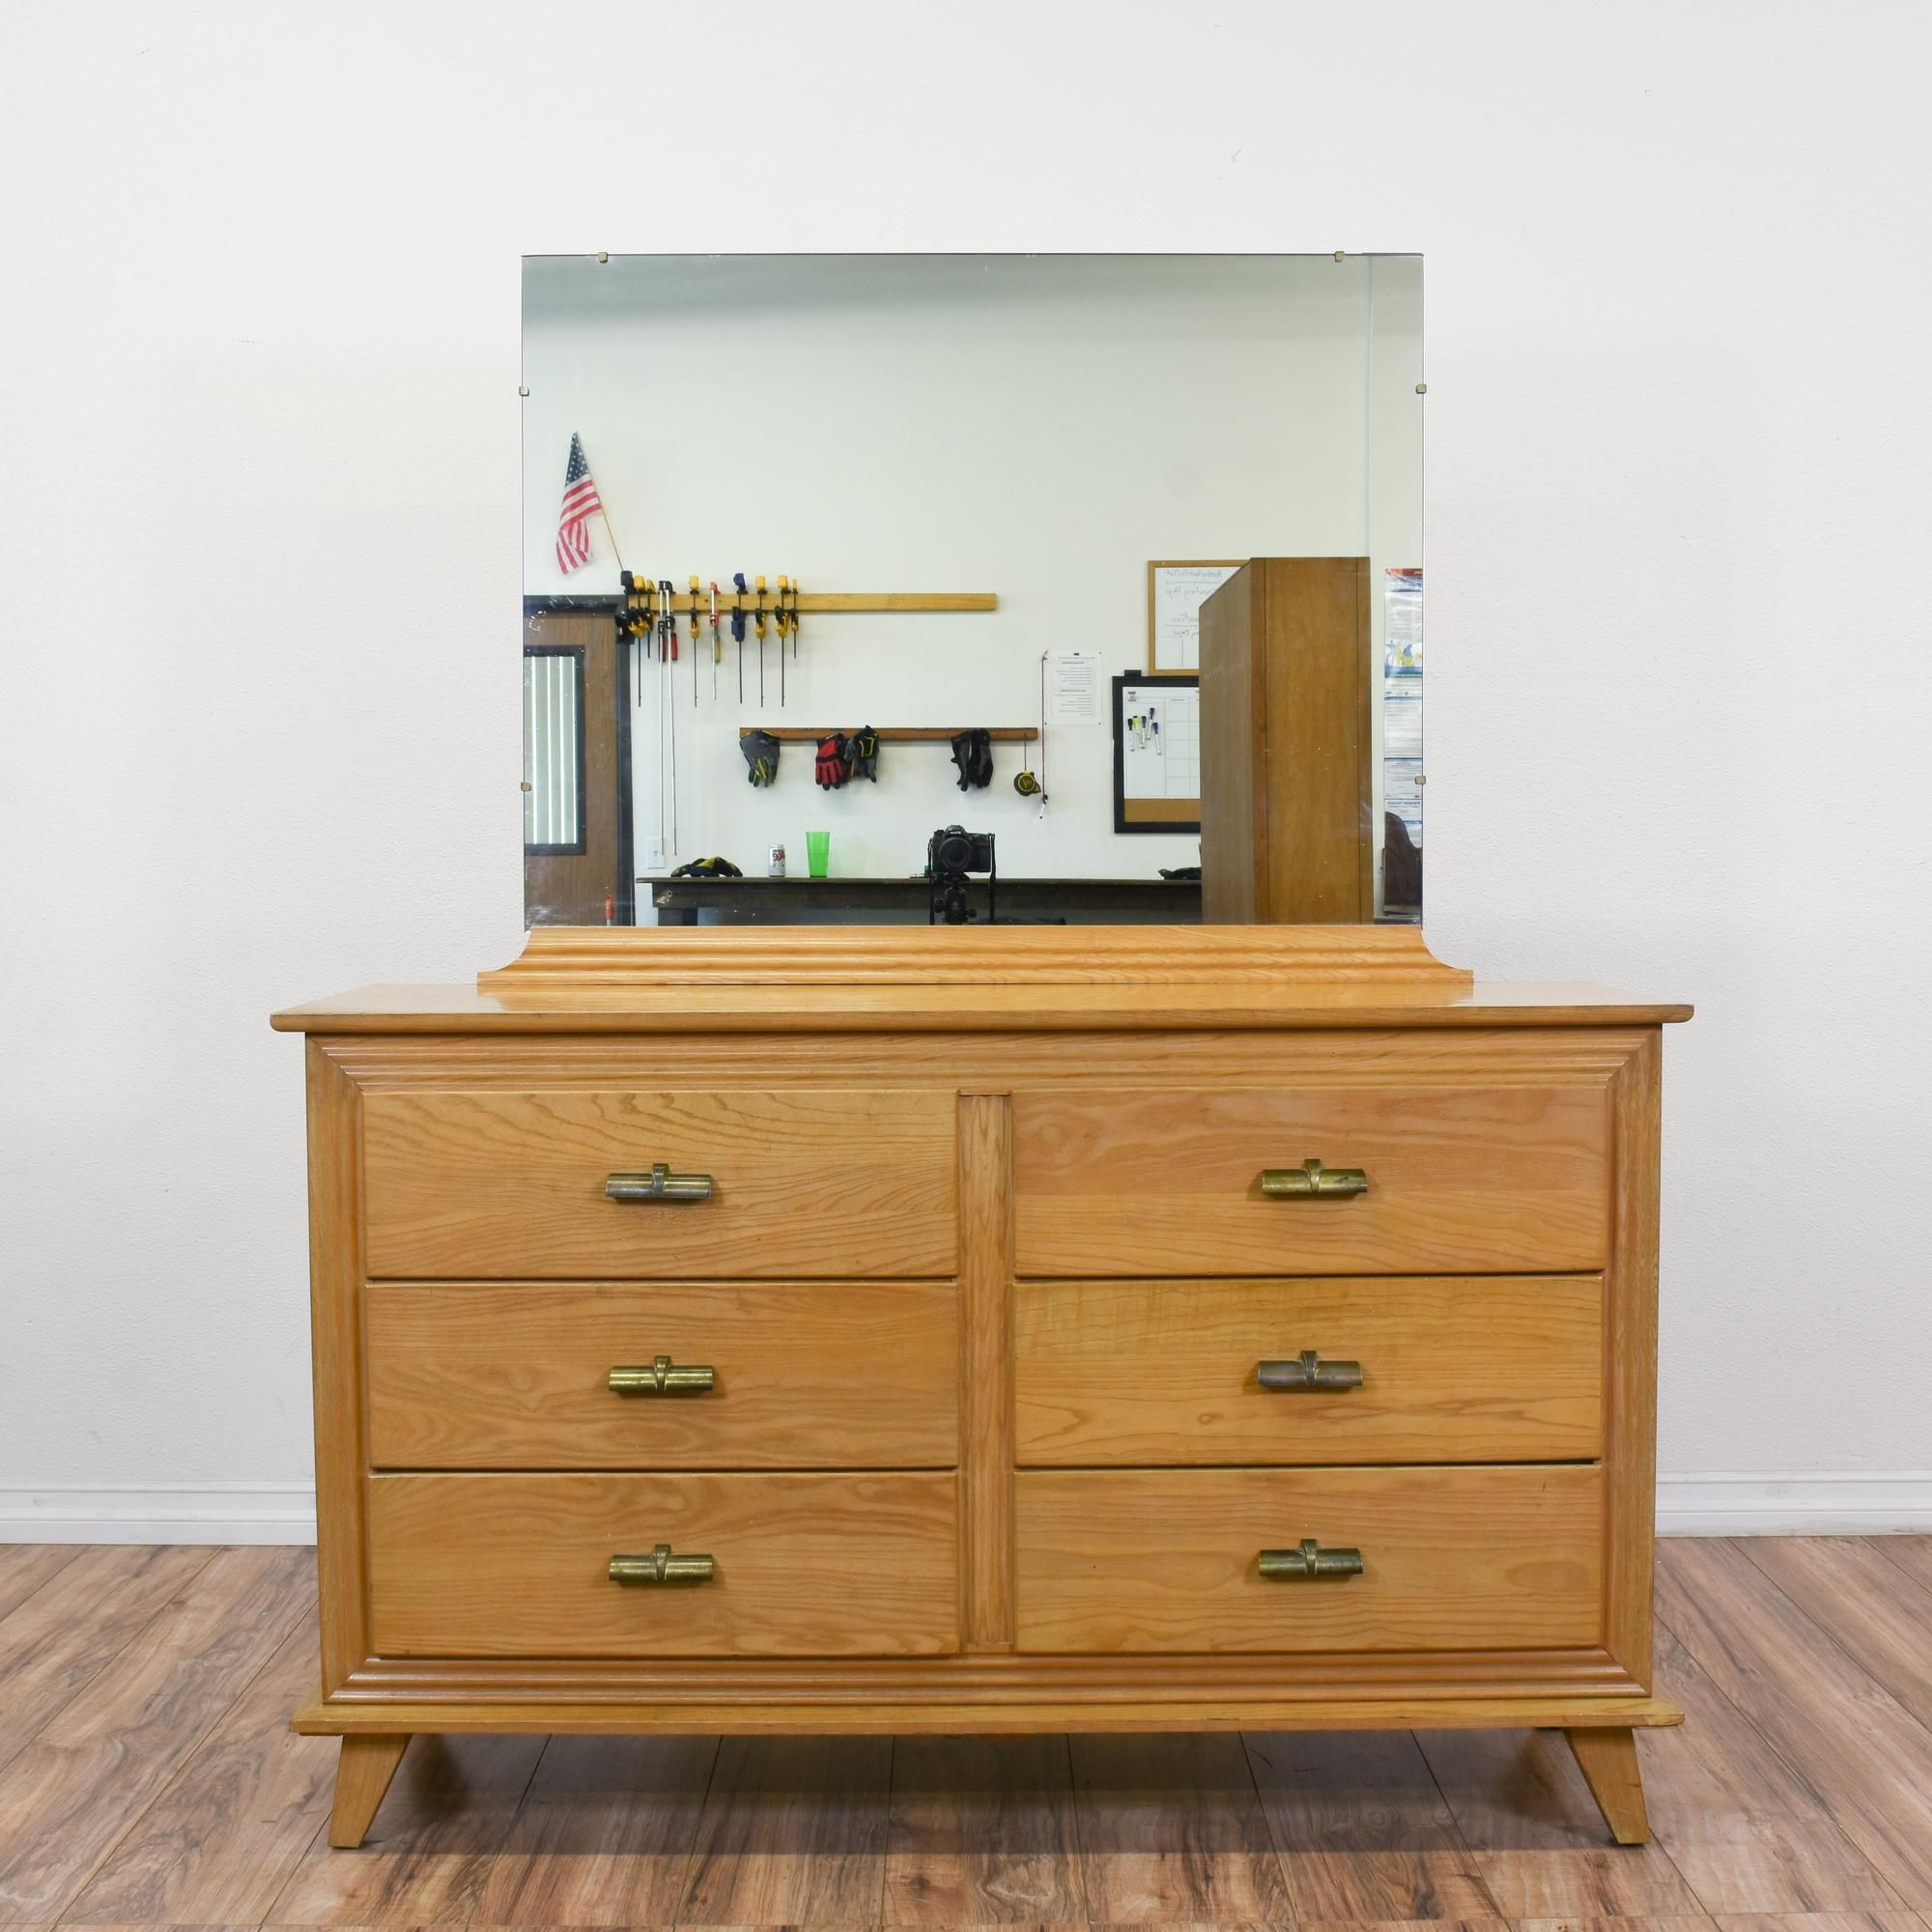 This Mid Century Modern Dresser Mirror Is Featured In A Solid